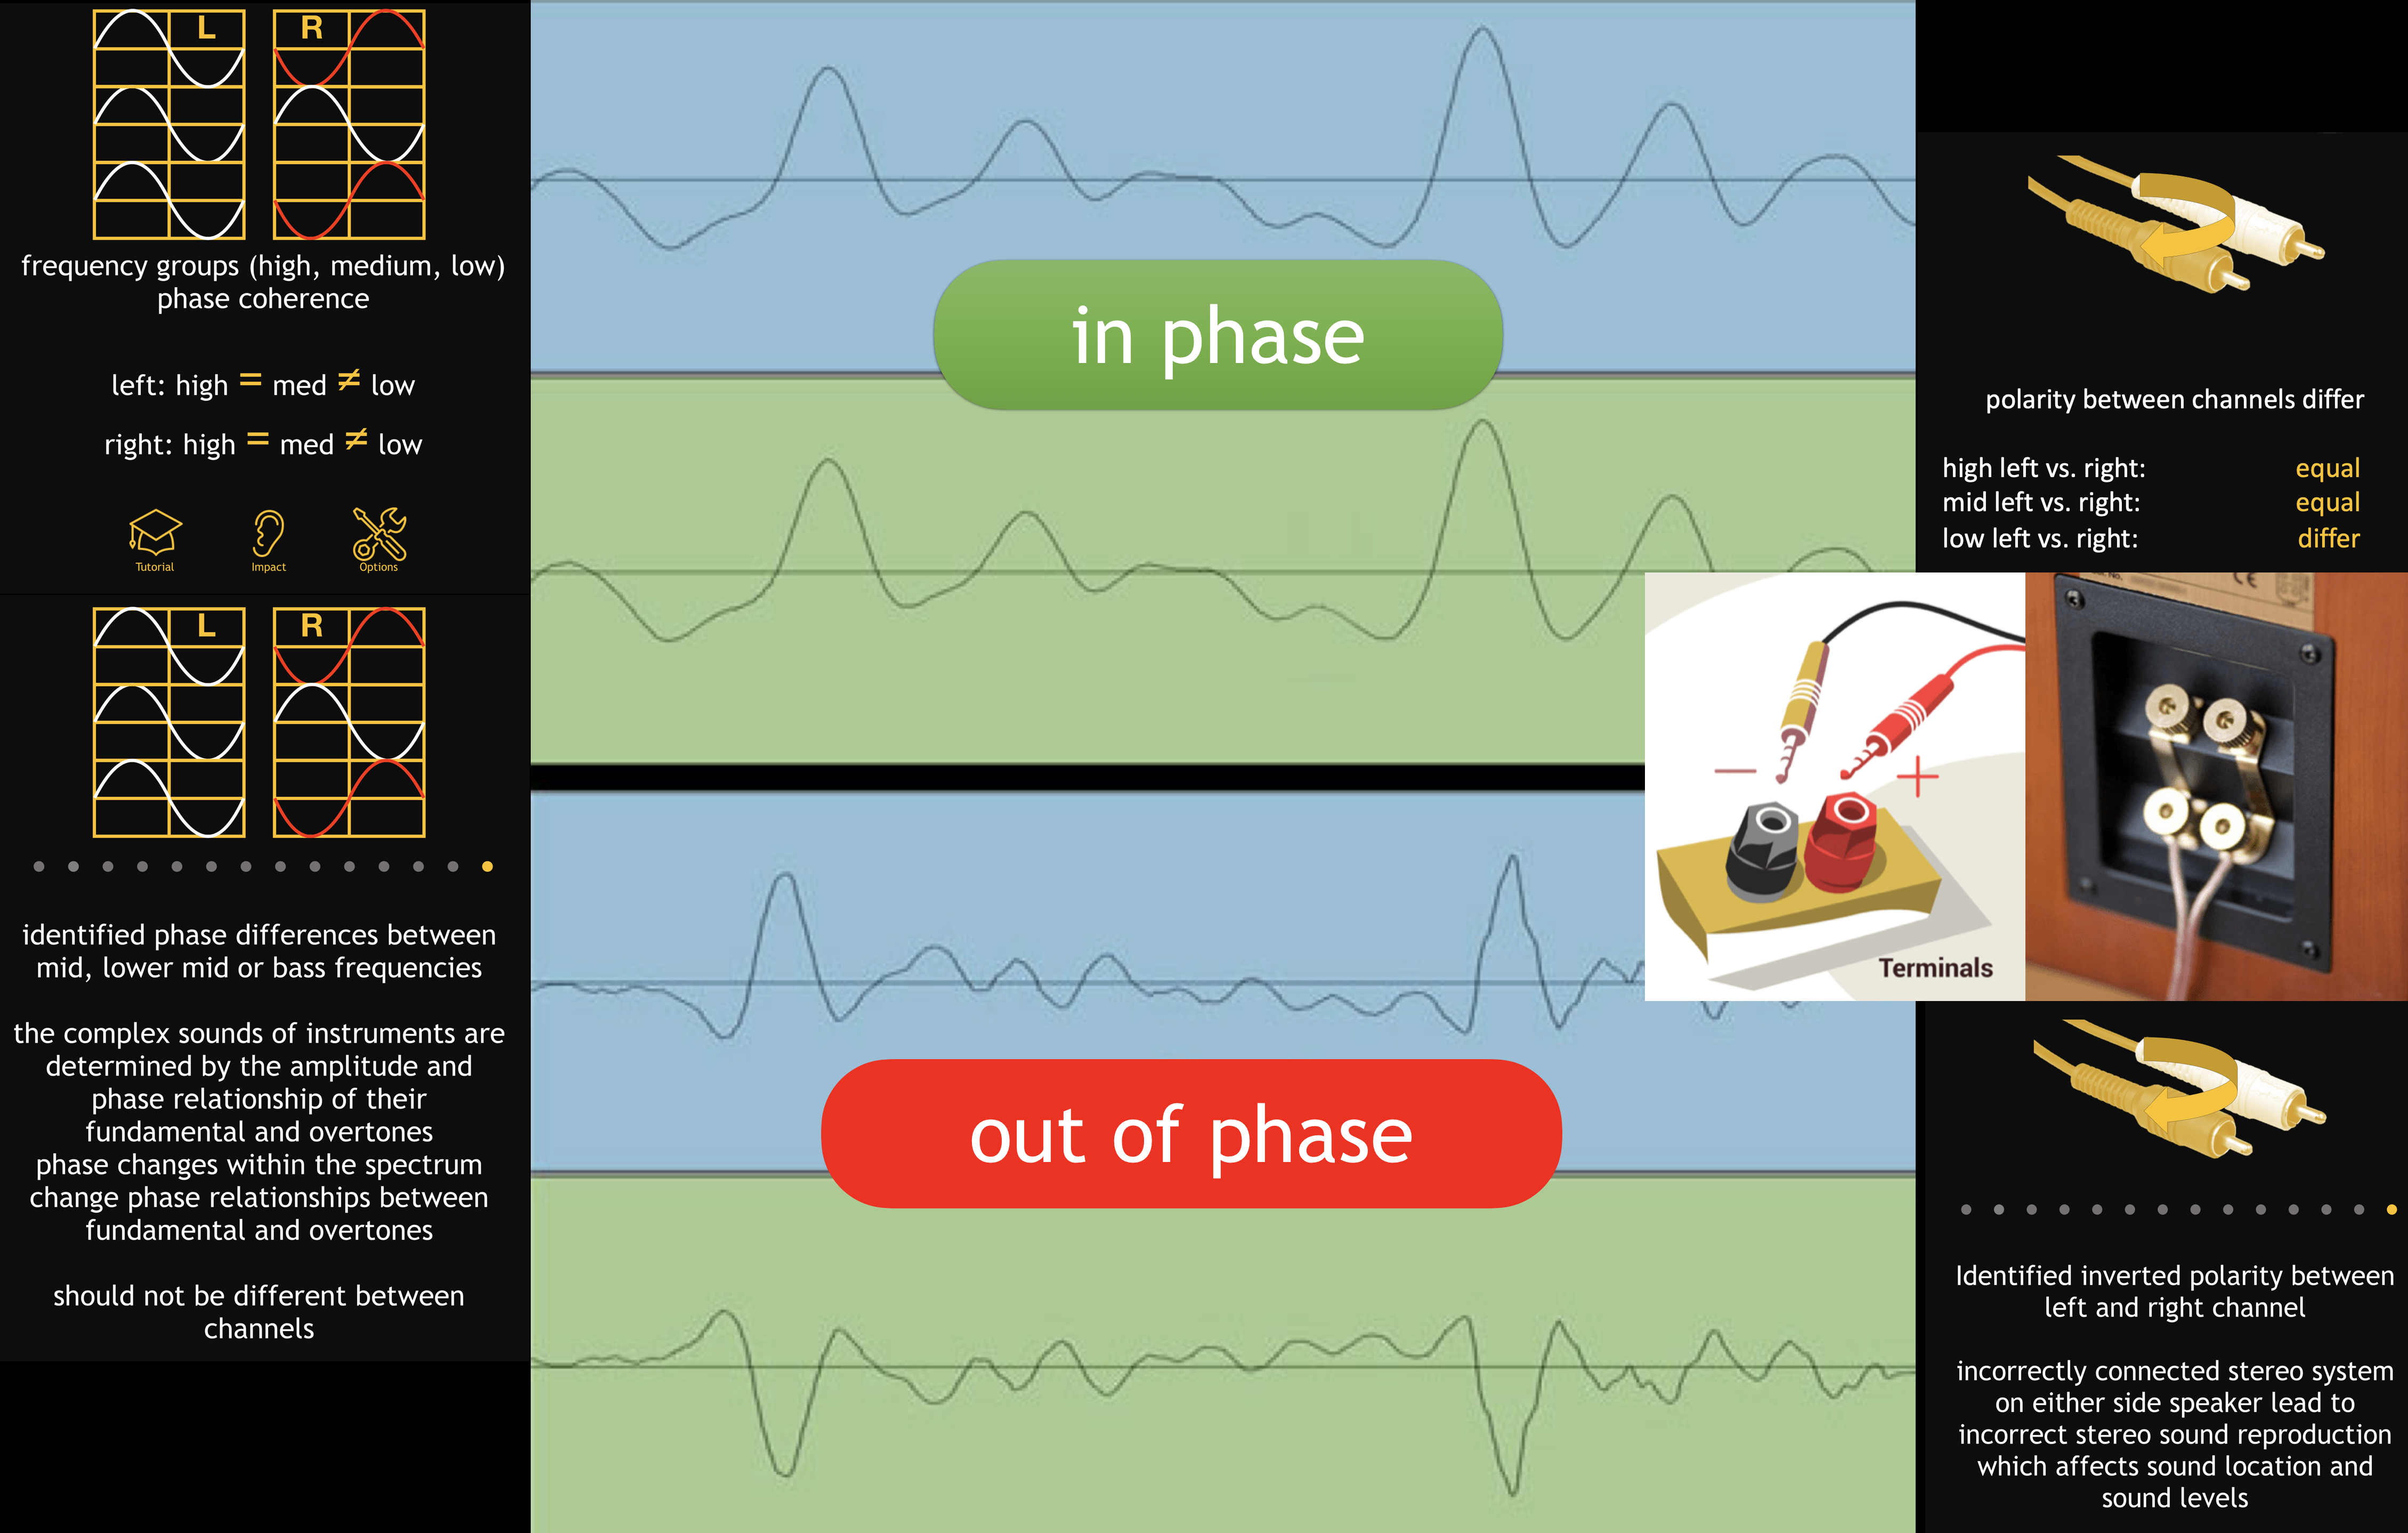 Flaws in audio at listening position – phase coherence or polarity variation